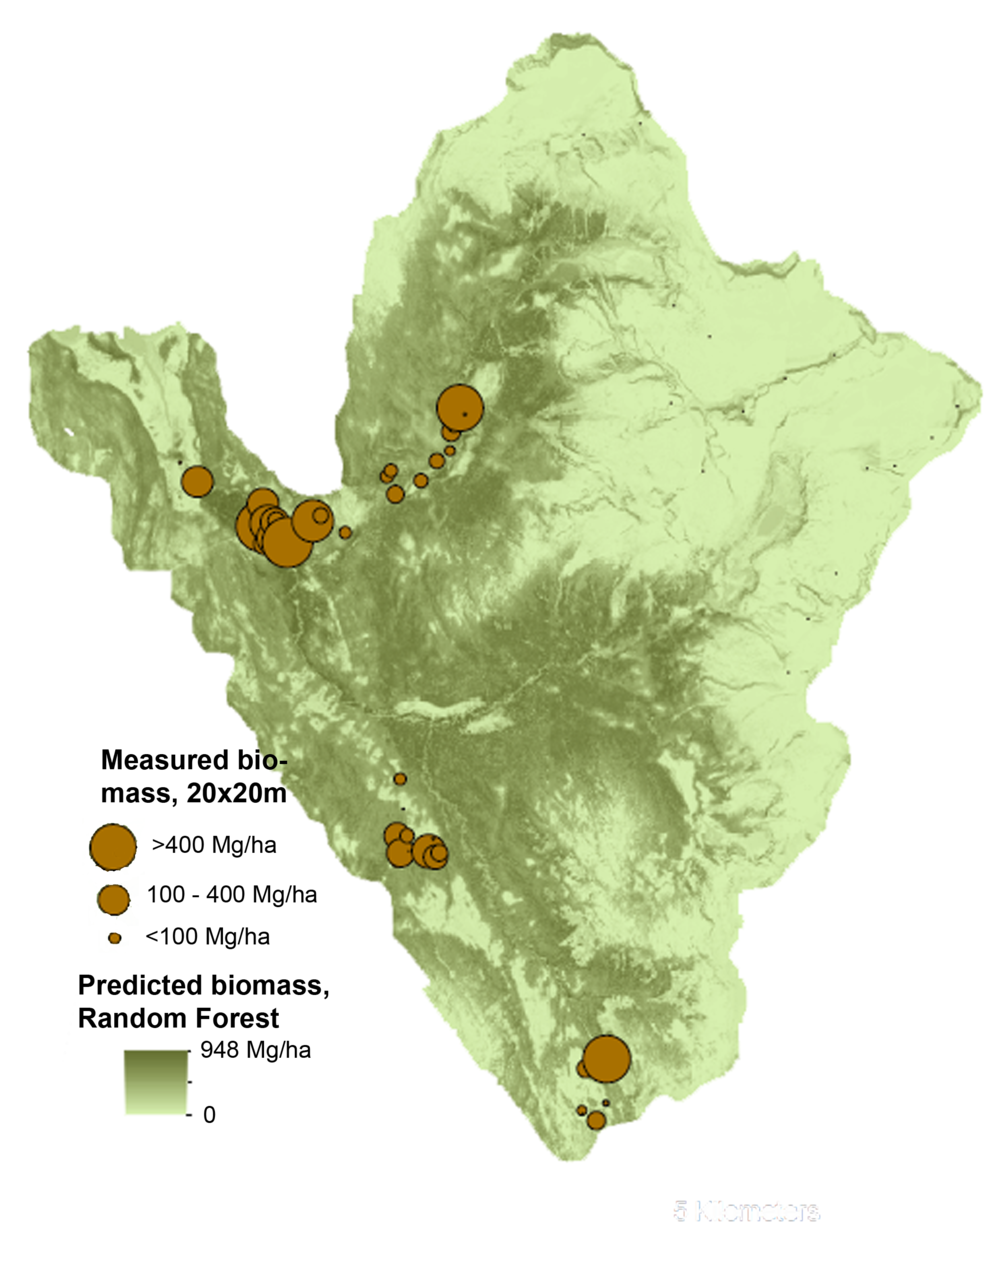 LiDAR is also useful for carbon estimation at relatively large scales.  This map (the Heen Latinee experimental forest) was completed as part of NASA funded project linking stream and forest carbon fluxes.  Buma et al. 2015.  This was done via random forests, a statistical machine learning technique commonly used to handle complex, large ecological or biological data.